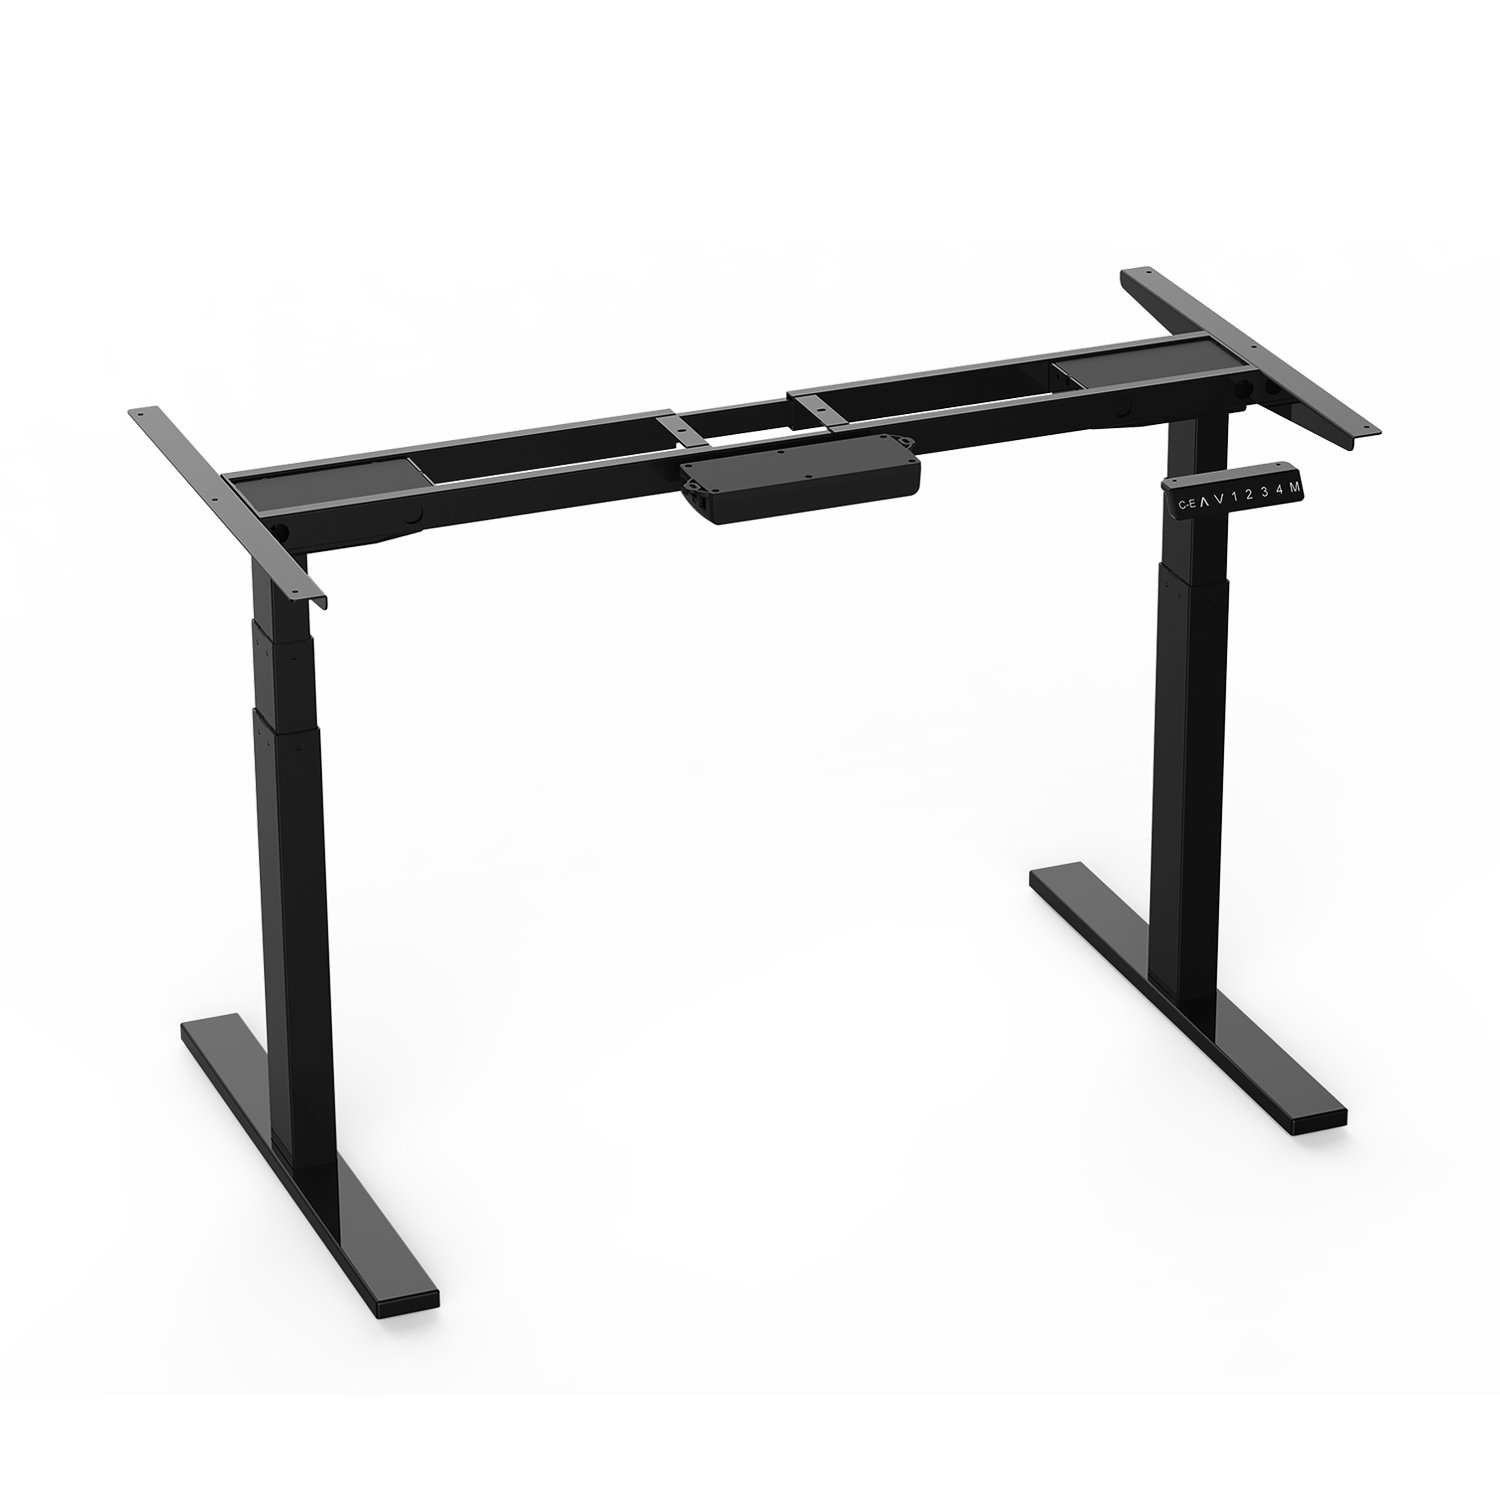 """AIMEZO 3 Tier Adjustable Legs Dual Motor Electric Sit to Stand Desk Frame 71"""" W Electric Height Adjustable Desk Base"""